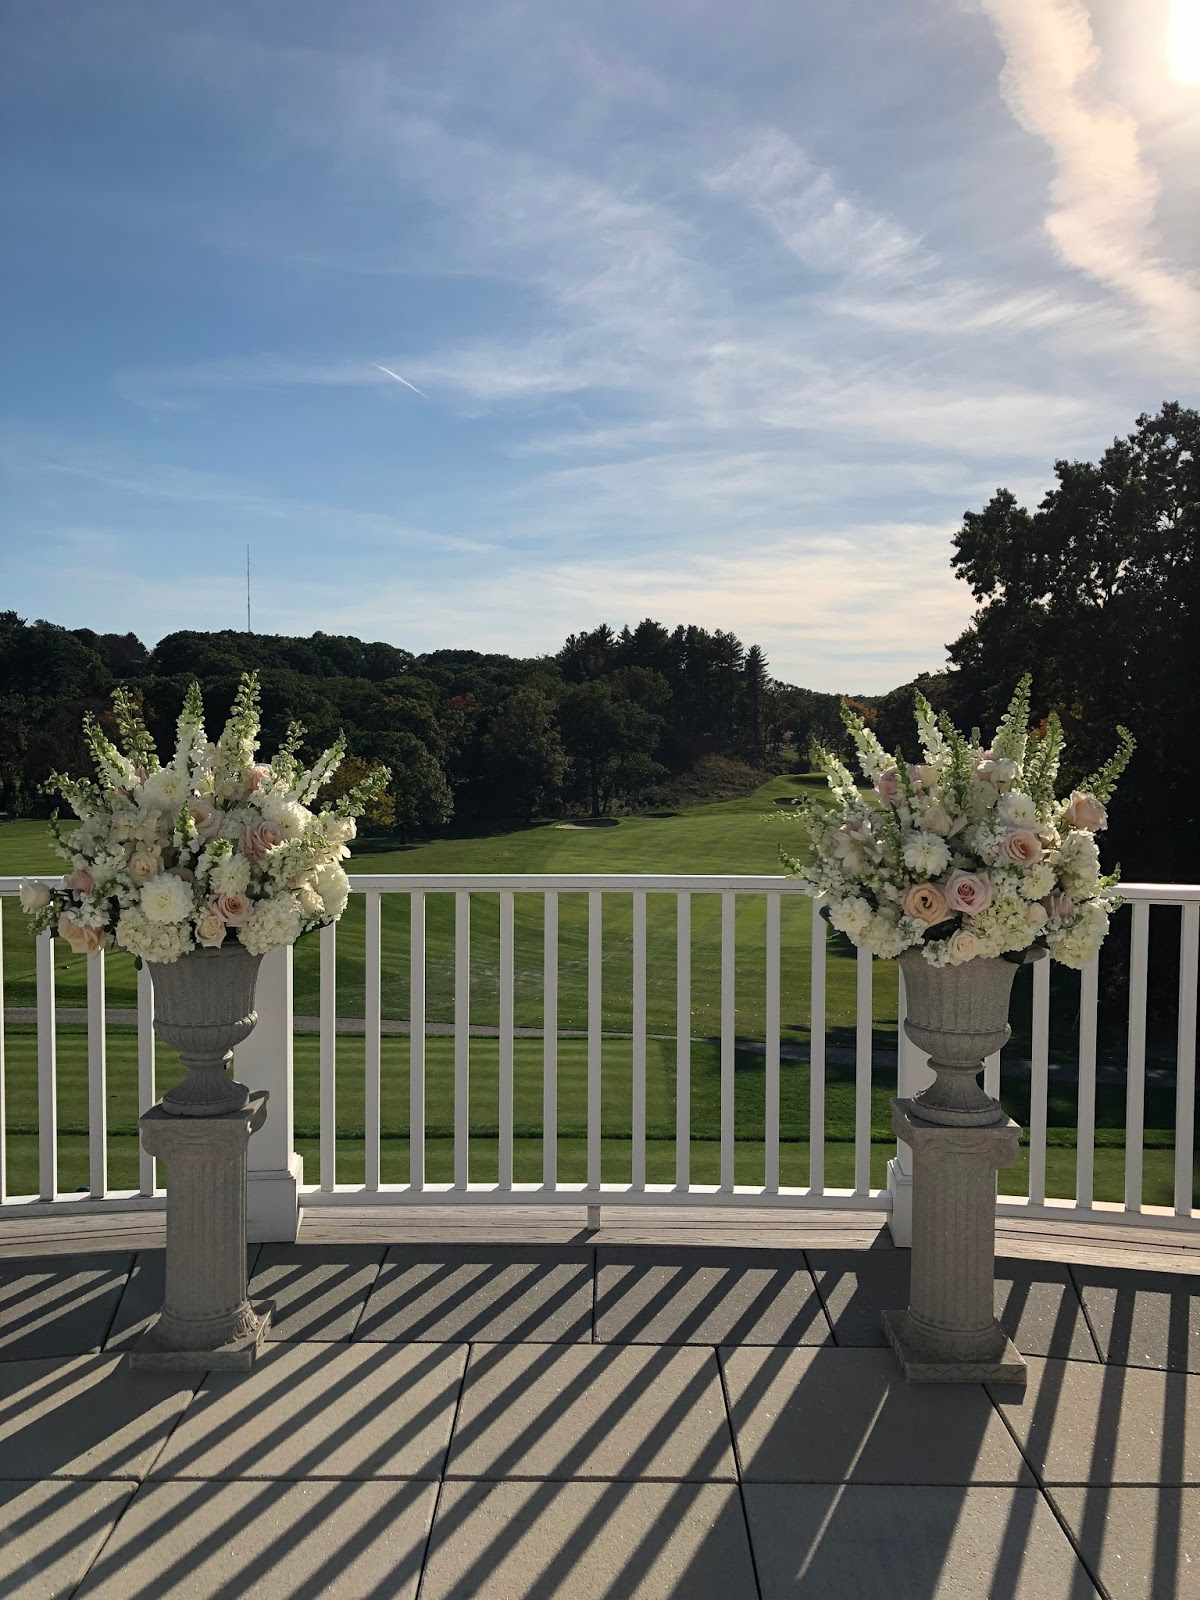 boston wedding planners, where to get married in boston, country club wedding new england, florals by jeri, florists in boston, wedding flowers, boston wedding planner